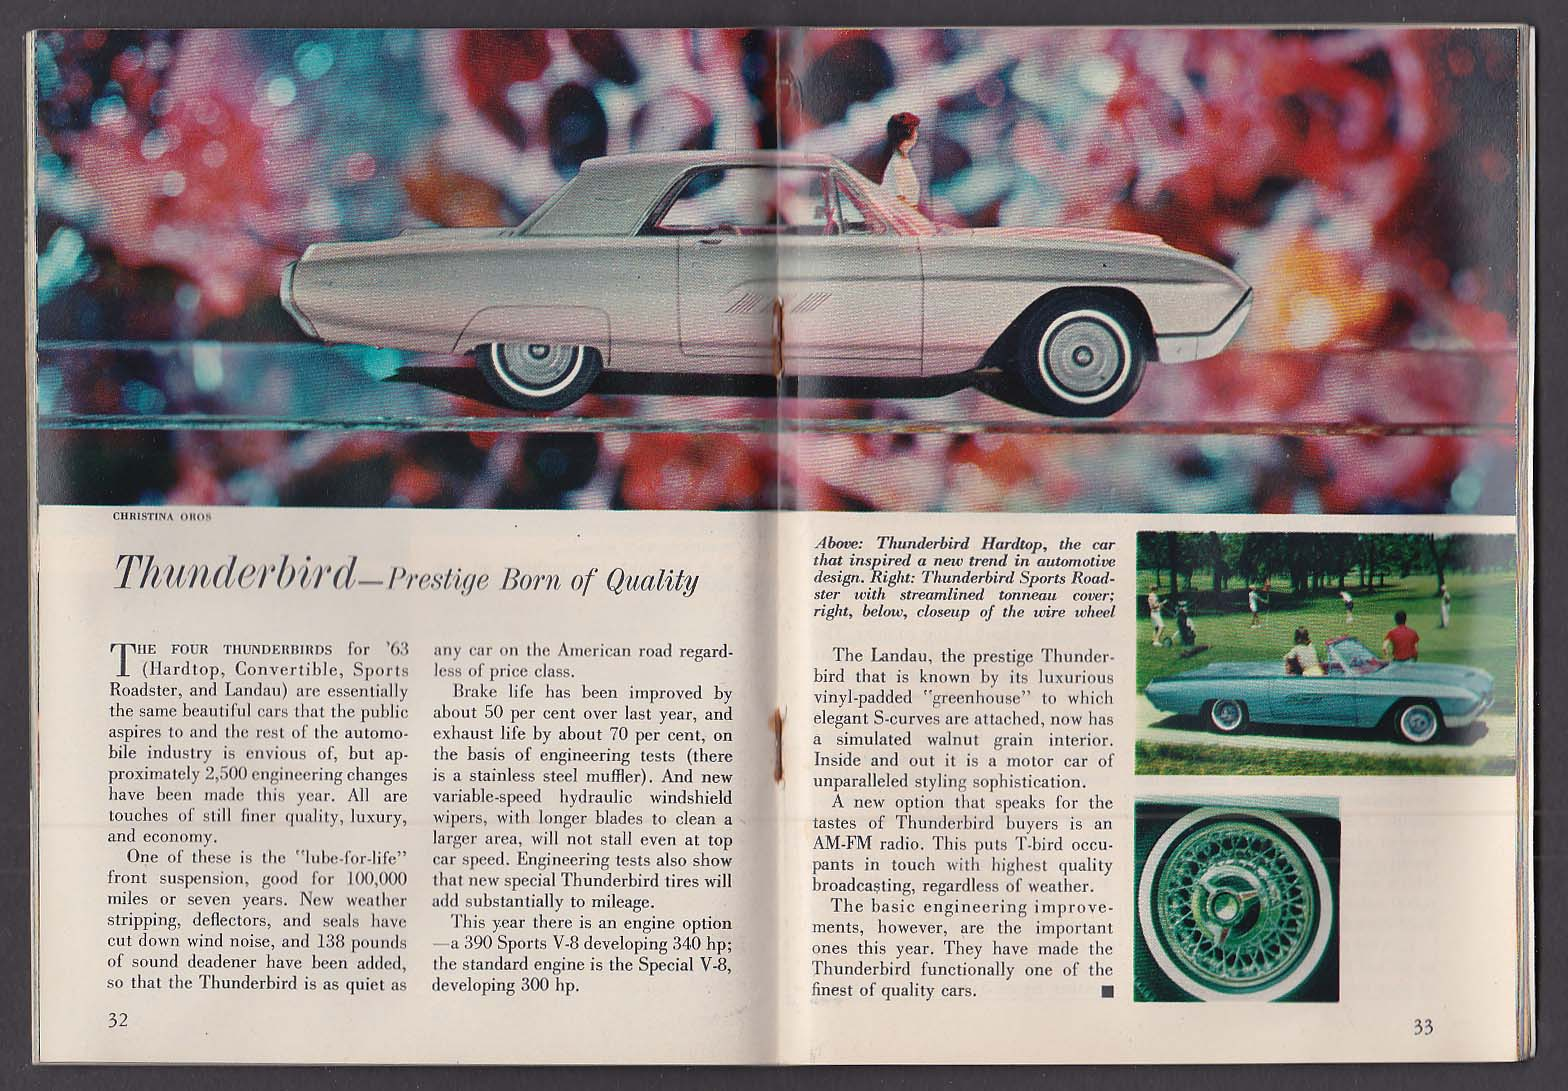 FORD TIMES 1963 Ford Auto Show Issue Galaxie Fairlane Falcon Thunderbird 10 1962